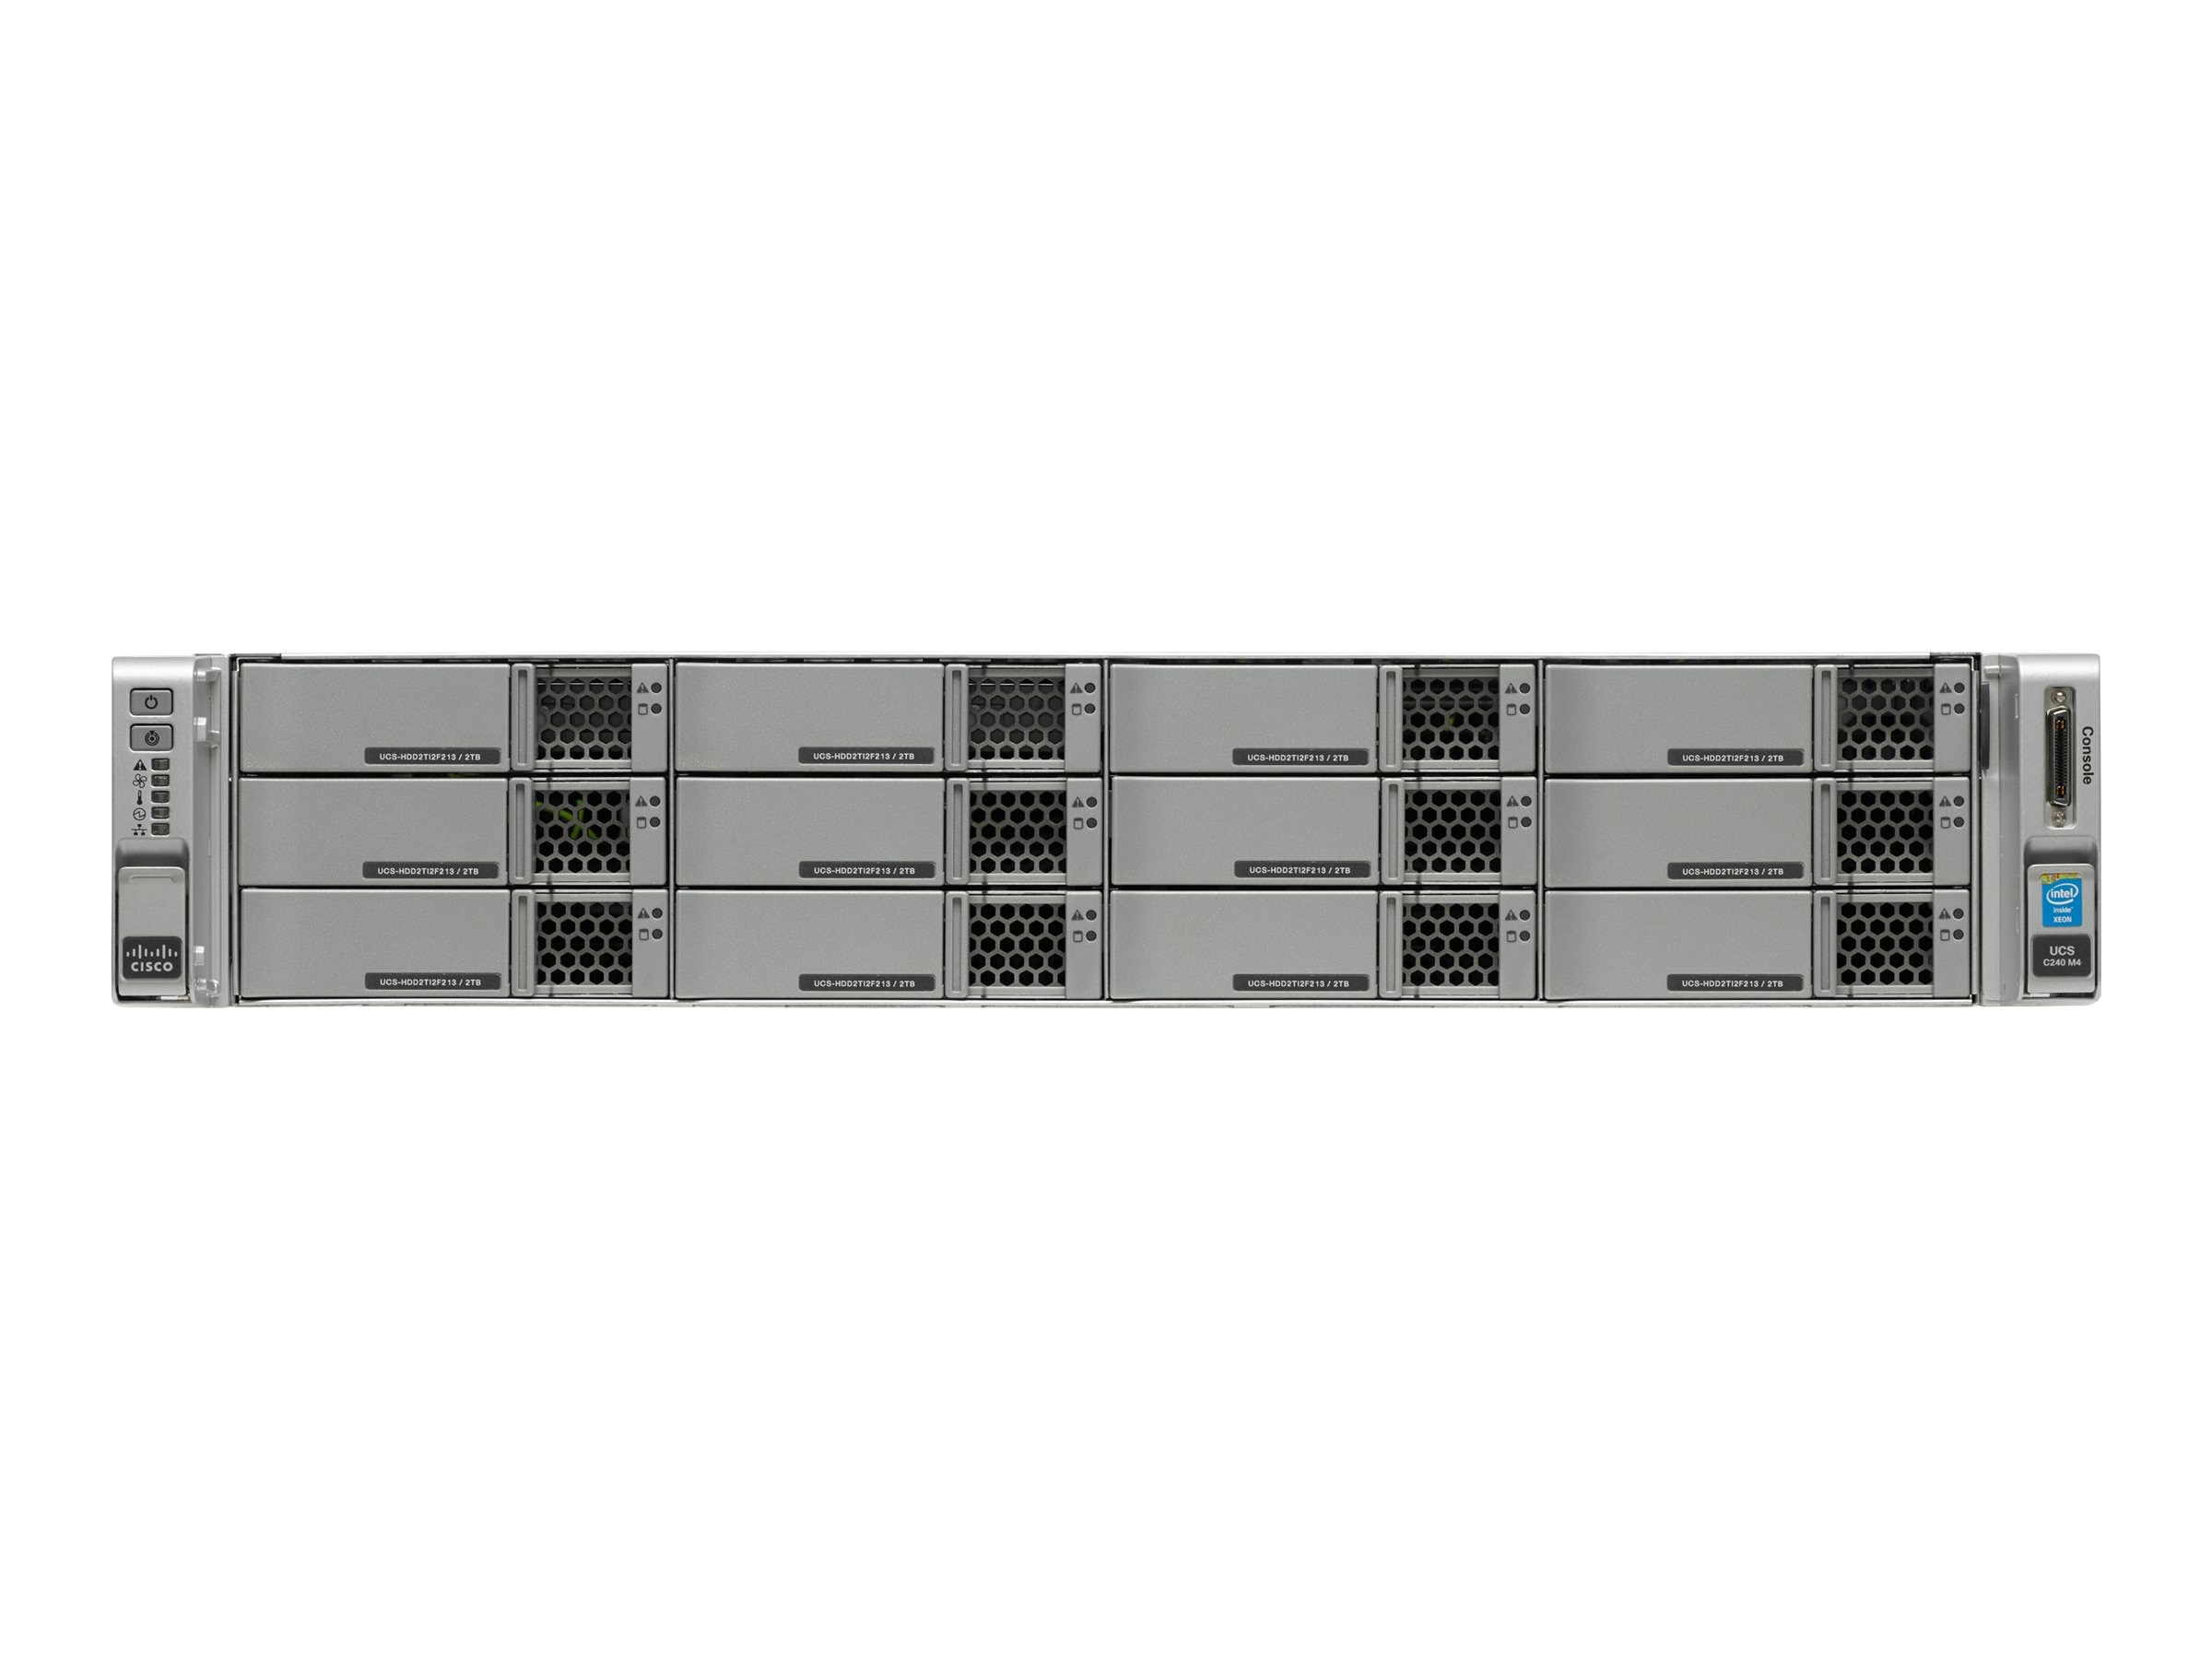 Cisco Connected Safety and Security UCS M4 2RU K9 (2x)Xeon E5-2600 v3 Family 32GB 12x3.5 Bays, CPS-UCSM4-2RU-K9